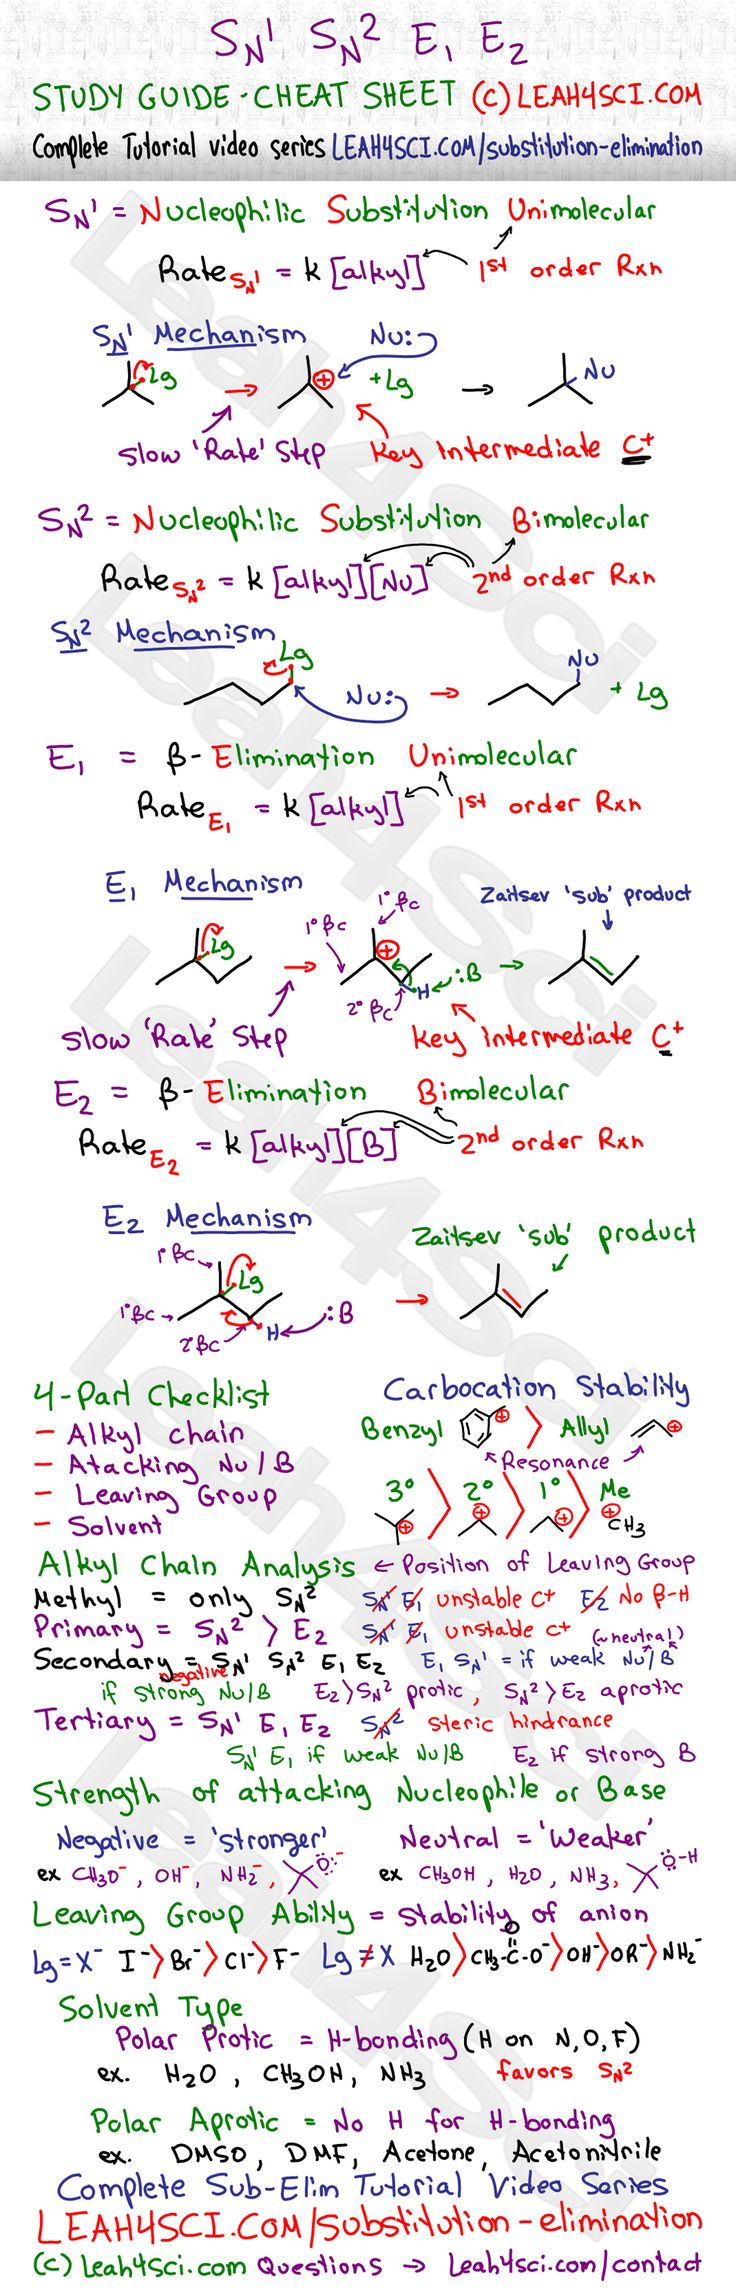 best ideas about organic chemistry organic organic chemistry study guide cheat sheet handy reference for determining between unimolecular and bimolecular substitution and elimination reactions